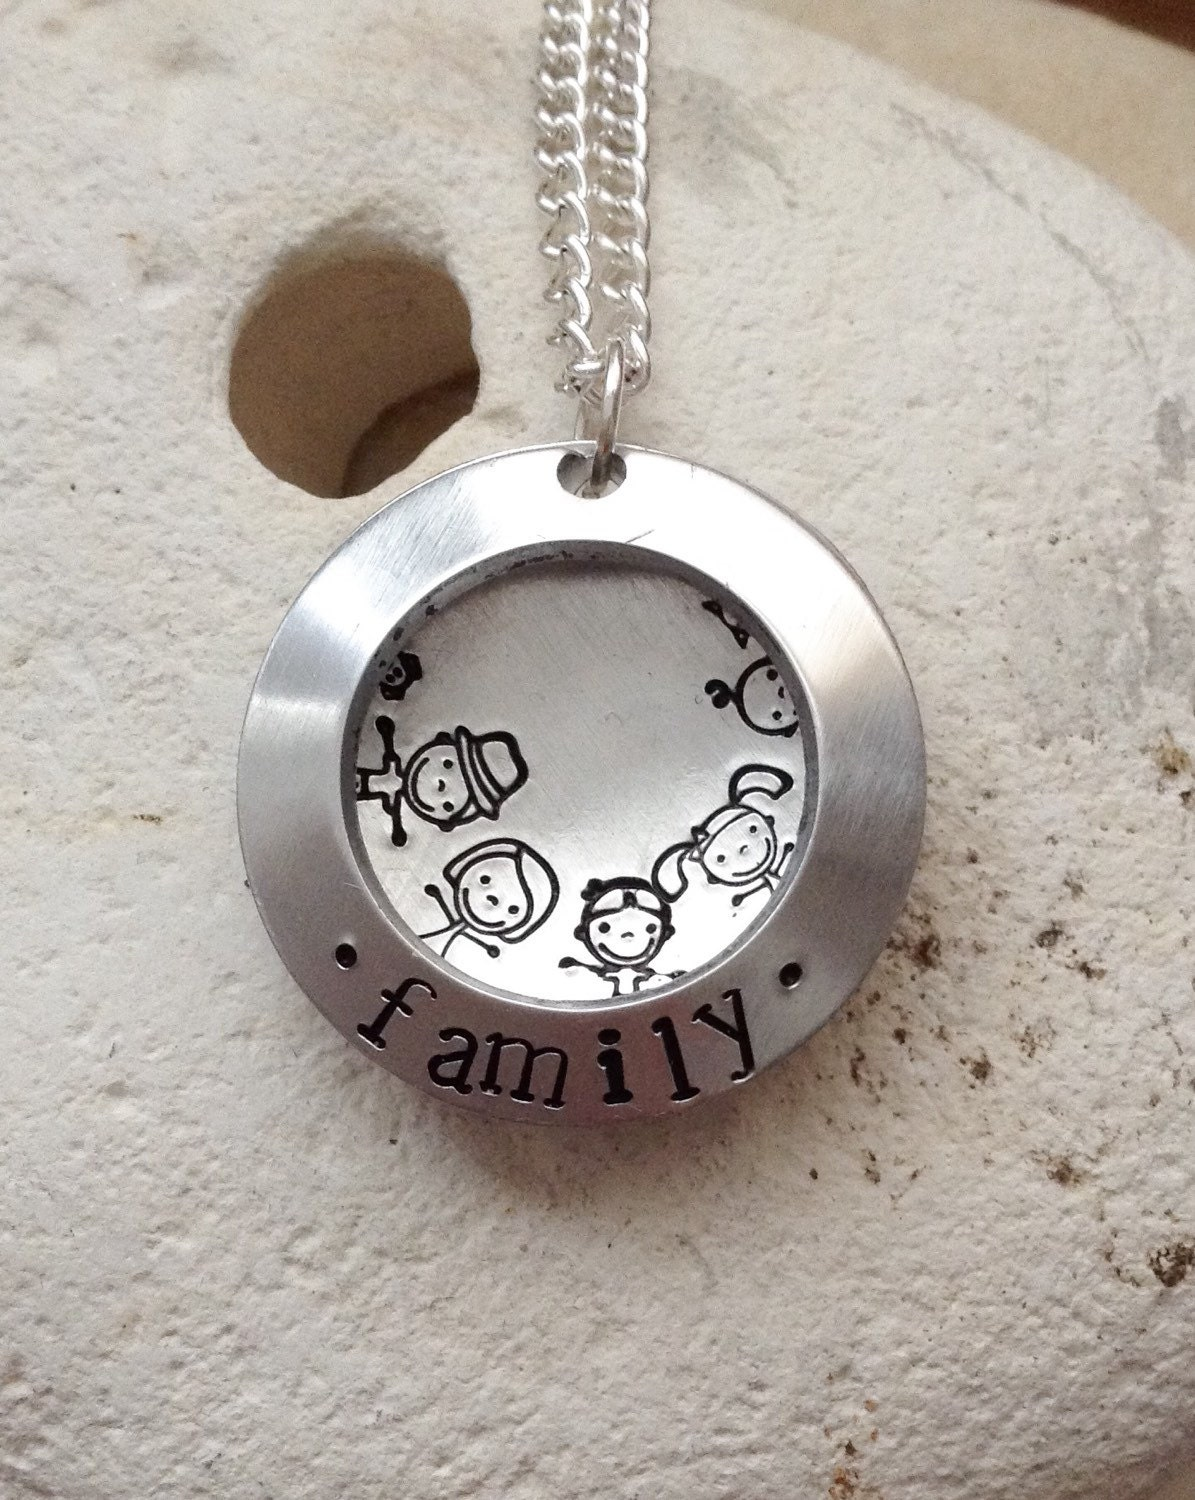 Family necklace - open clamshell locket - mum dad daughter son baby dog cat - you choose characters. Gifts for her - 25mm diameter